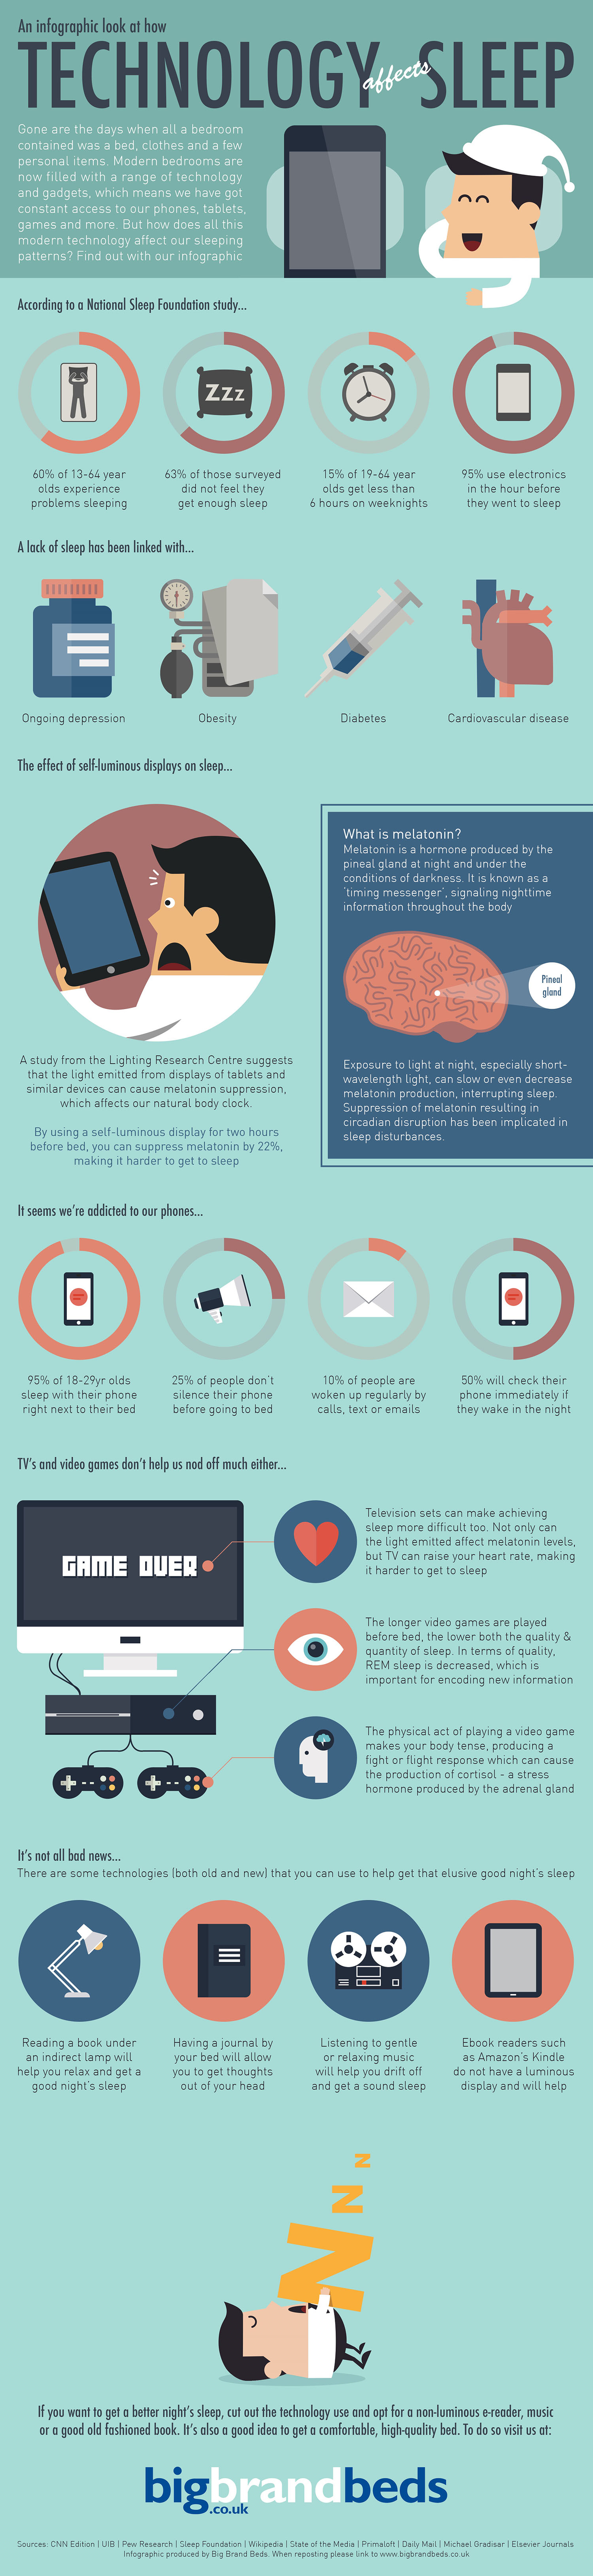 [Infographic] How Smartphones and Technology Affects your Sleep